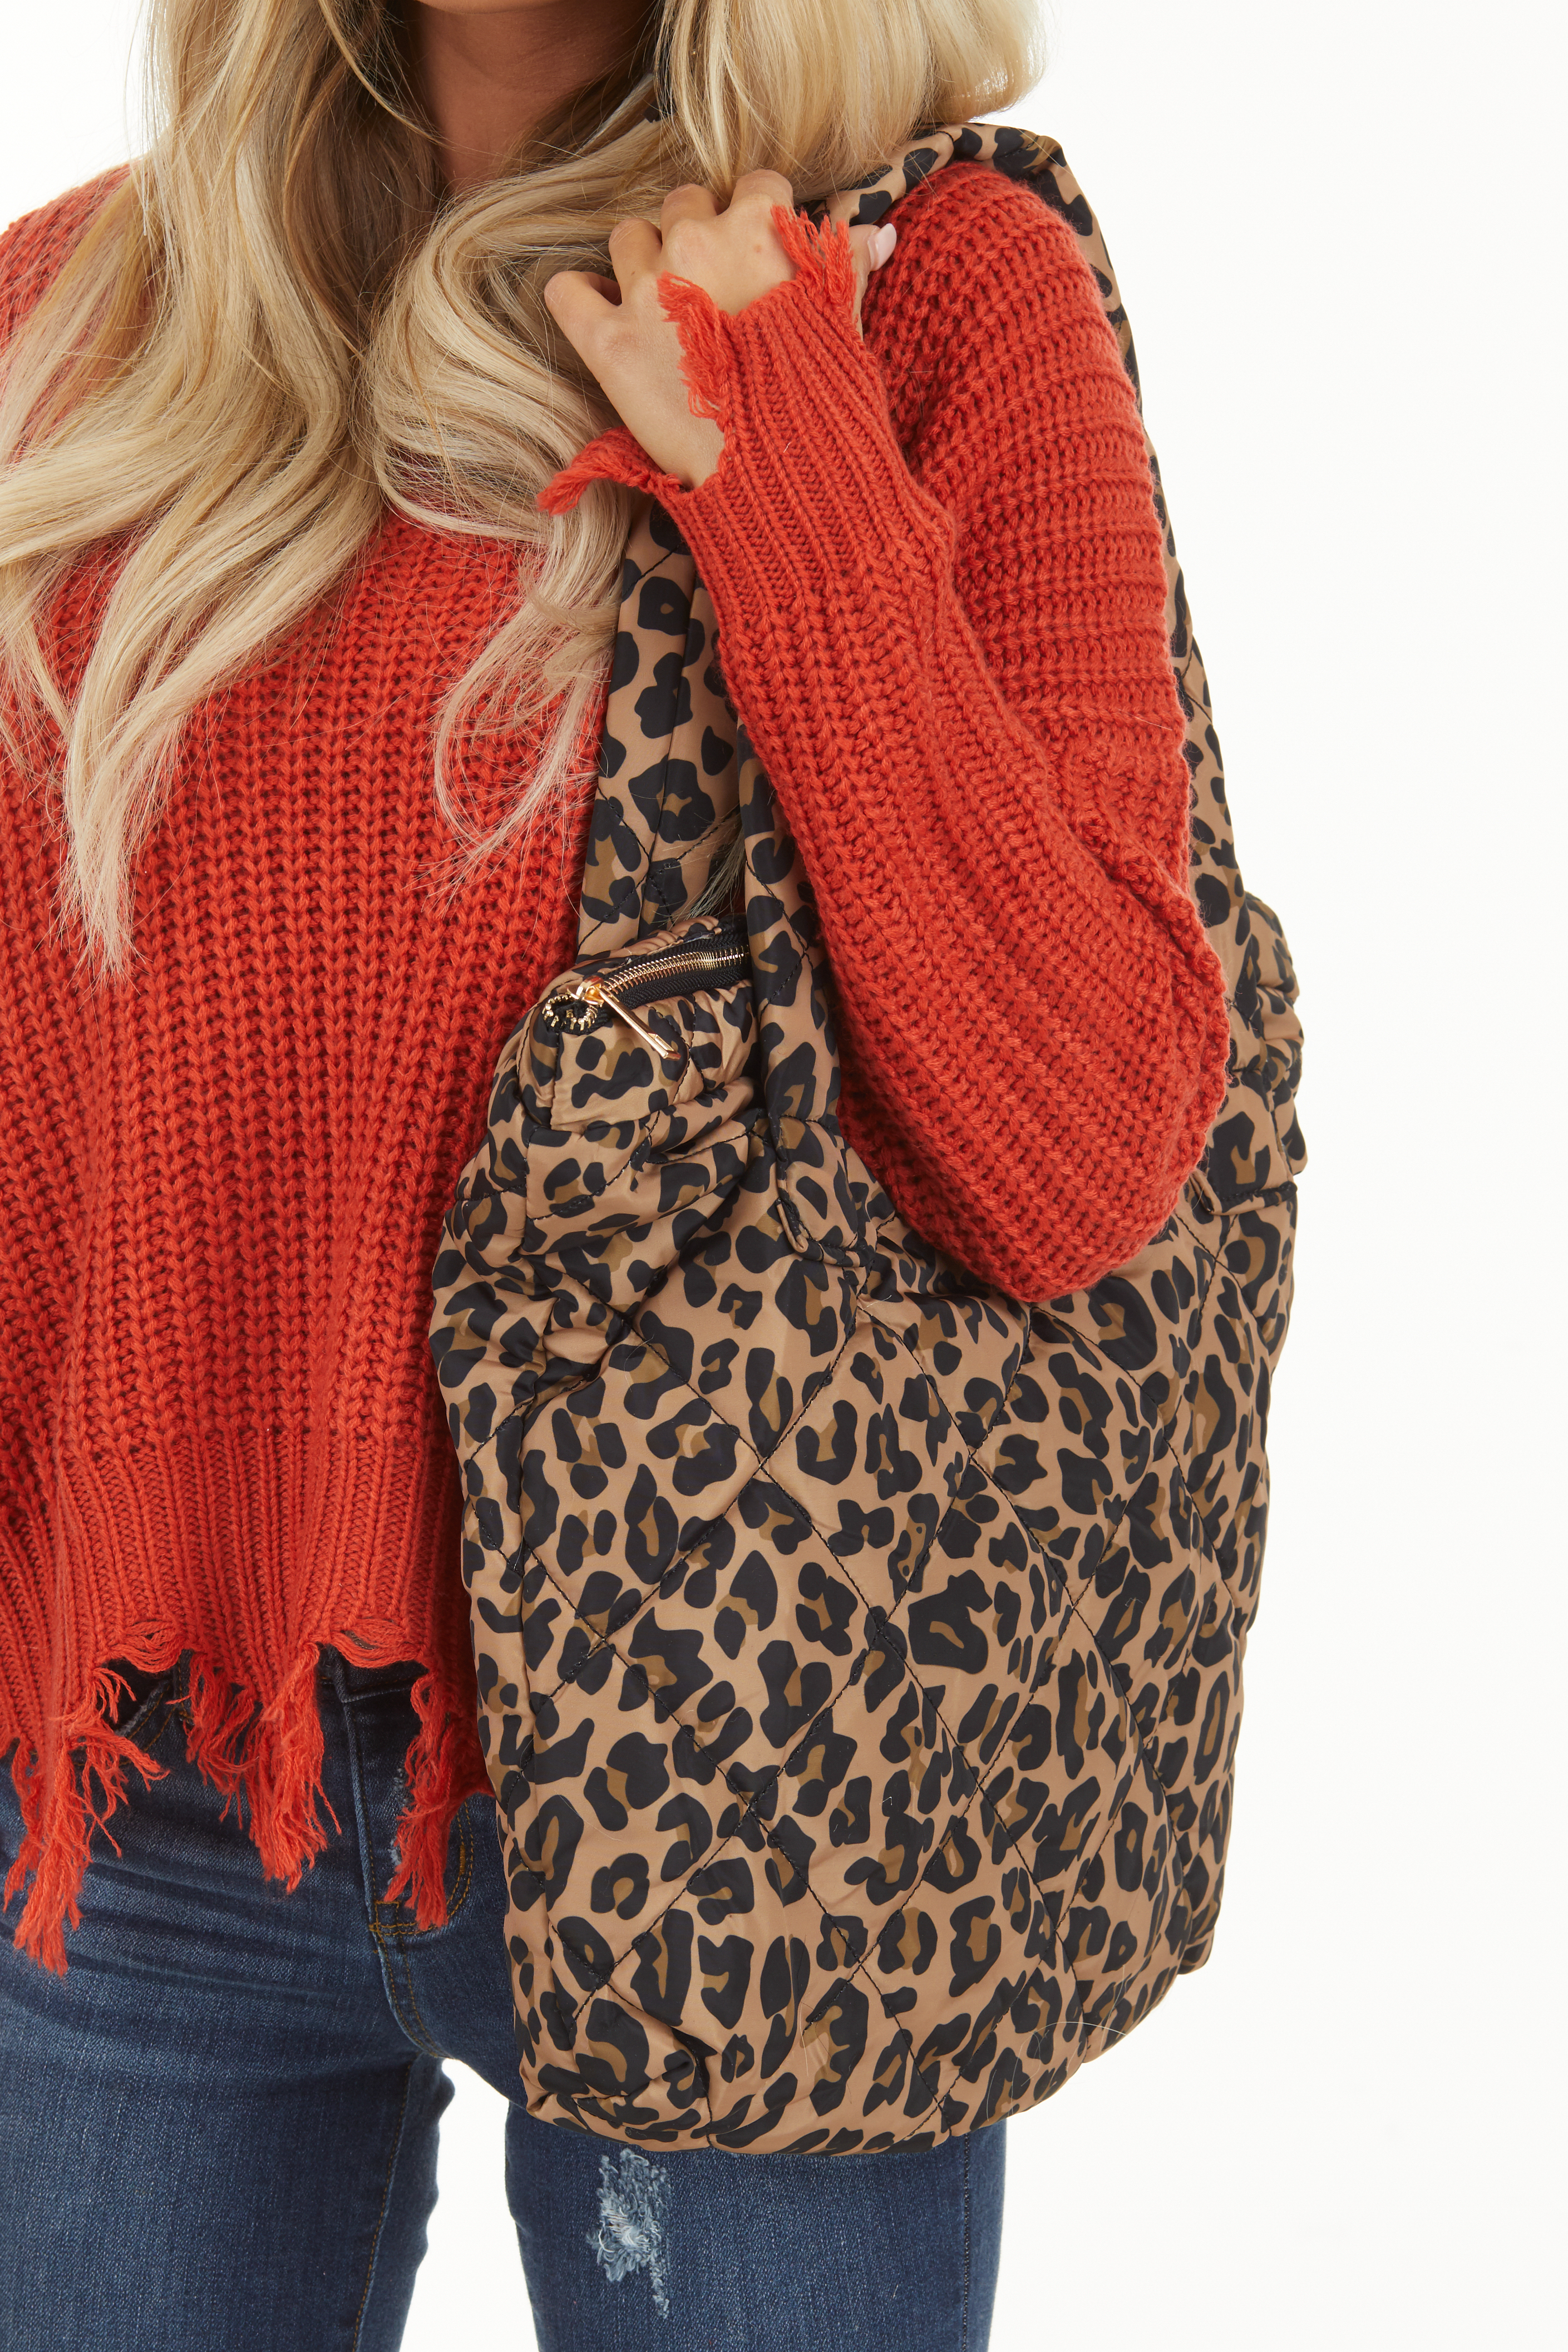 Caramel and Black Leopard Print Quilted Tote Bag